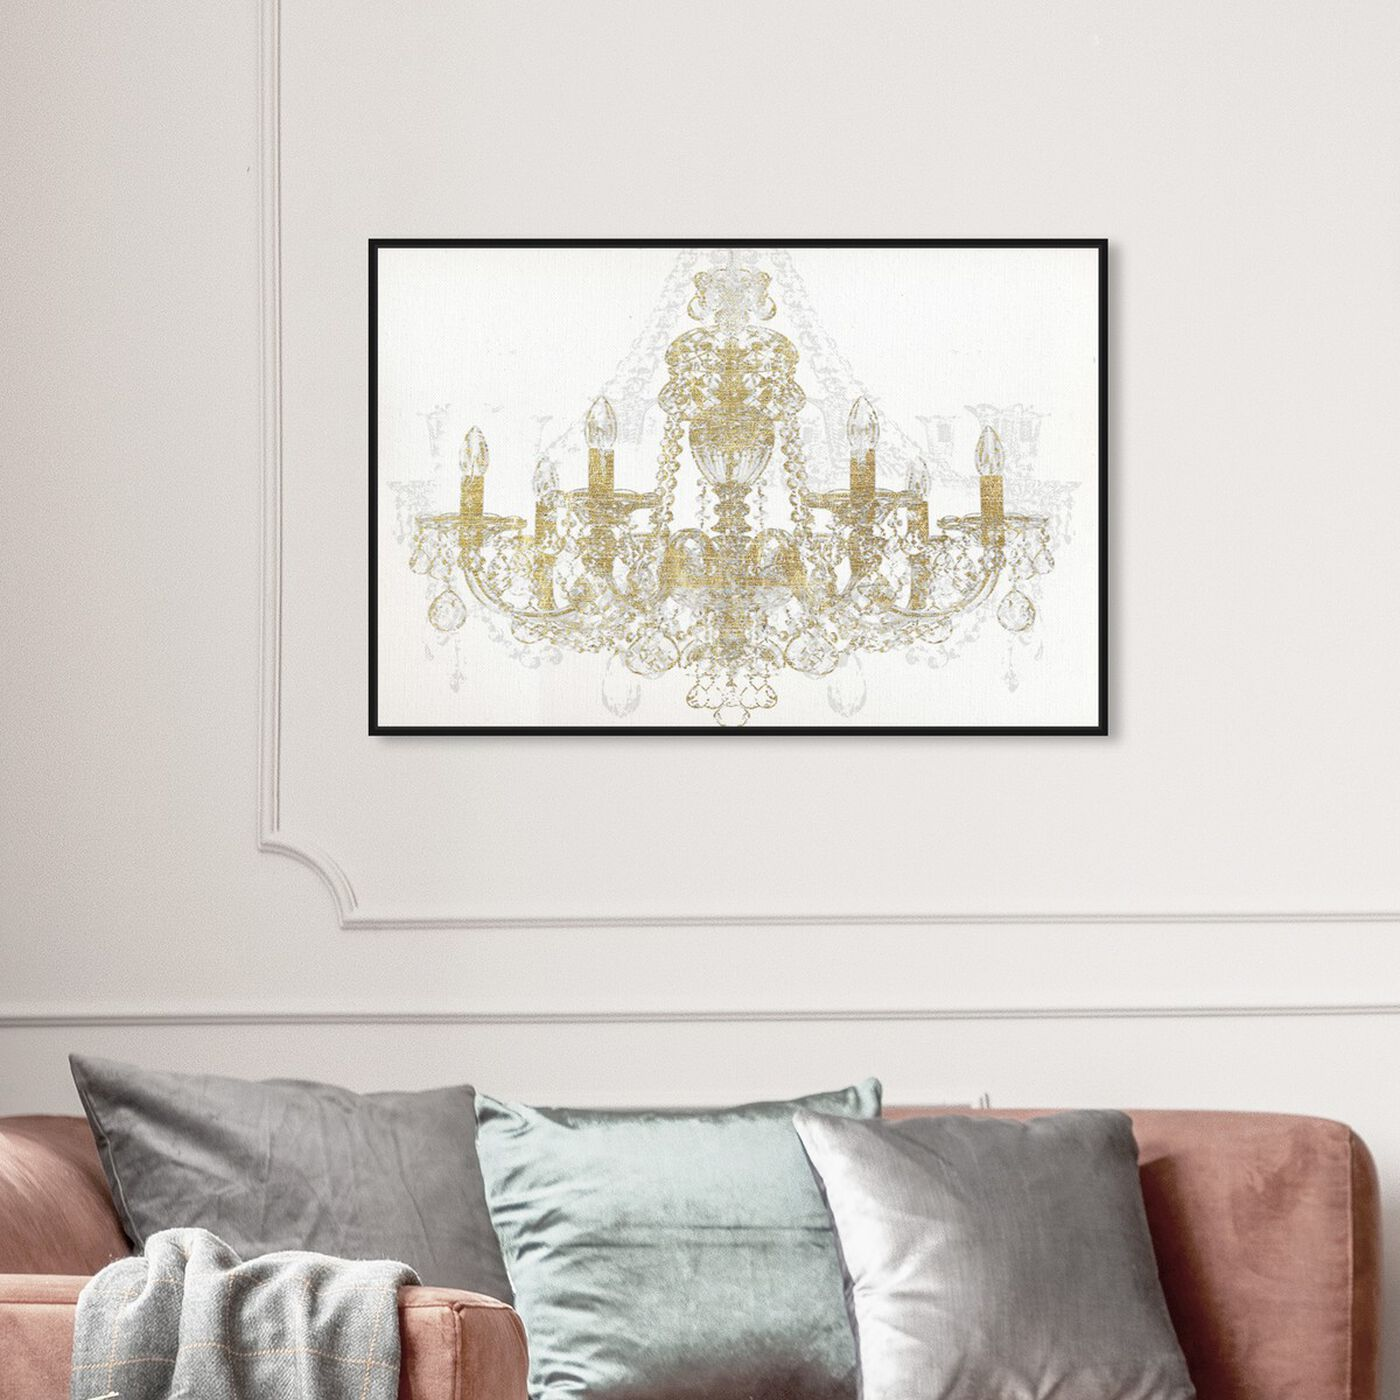 Hanging view of Chandelier Diamond featuring fashion and glam and chandeliers art.